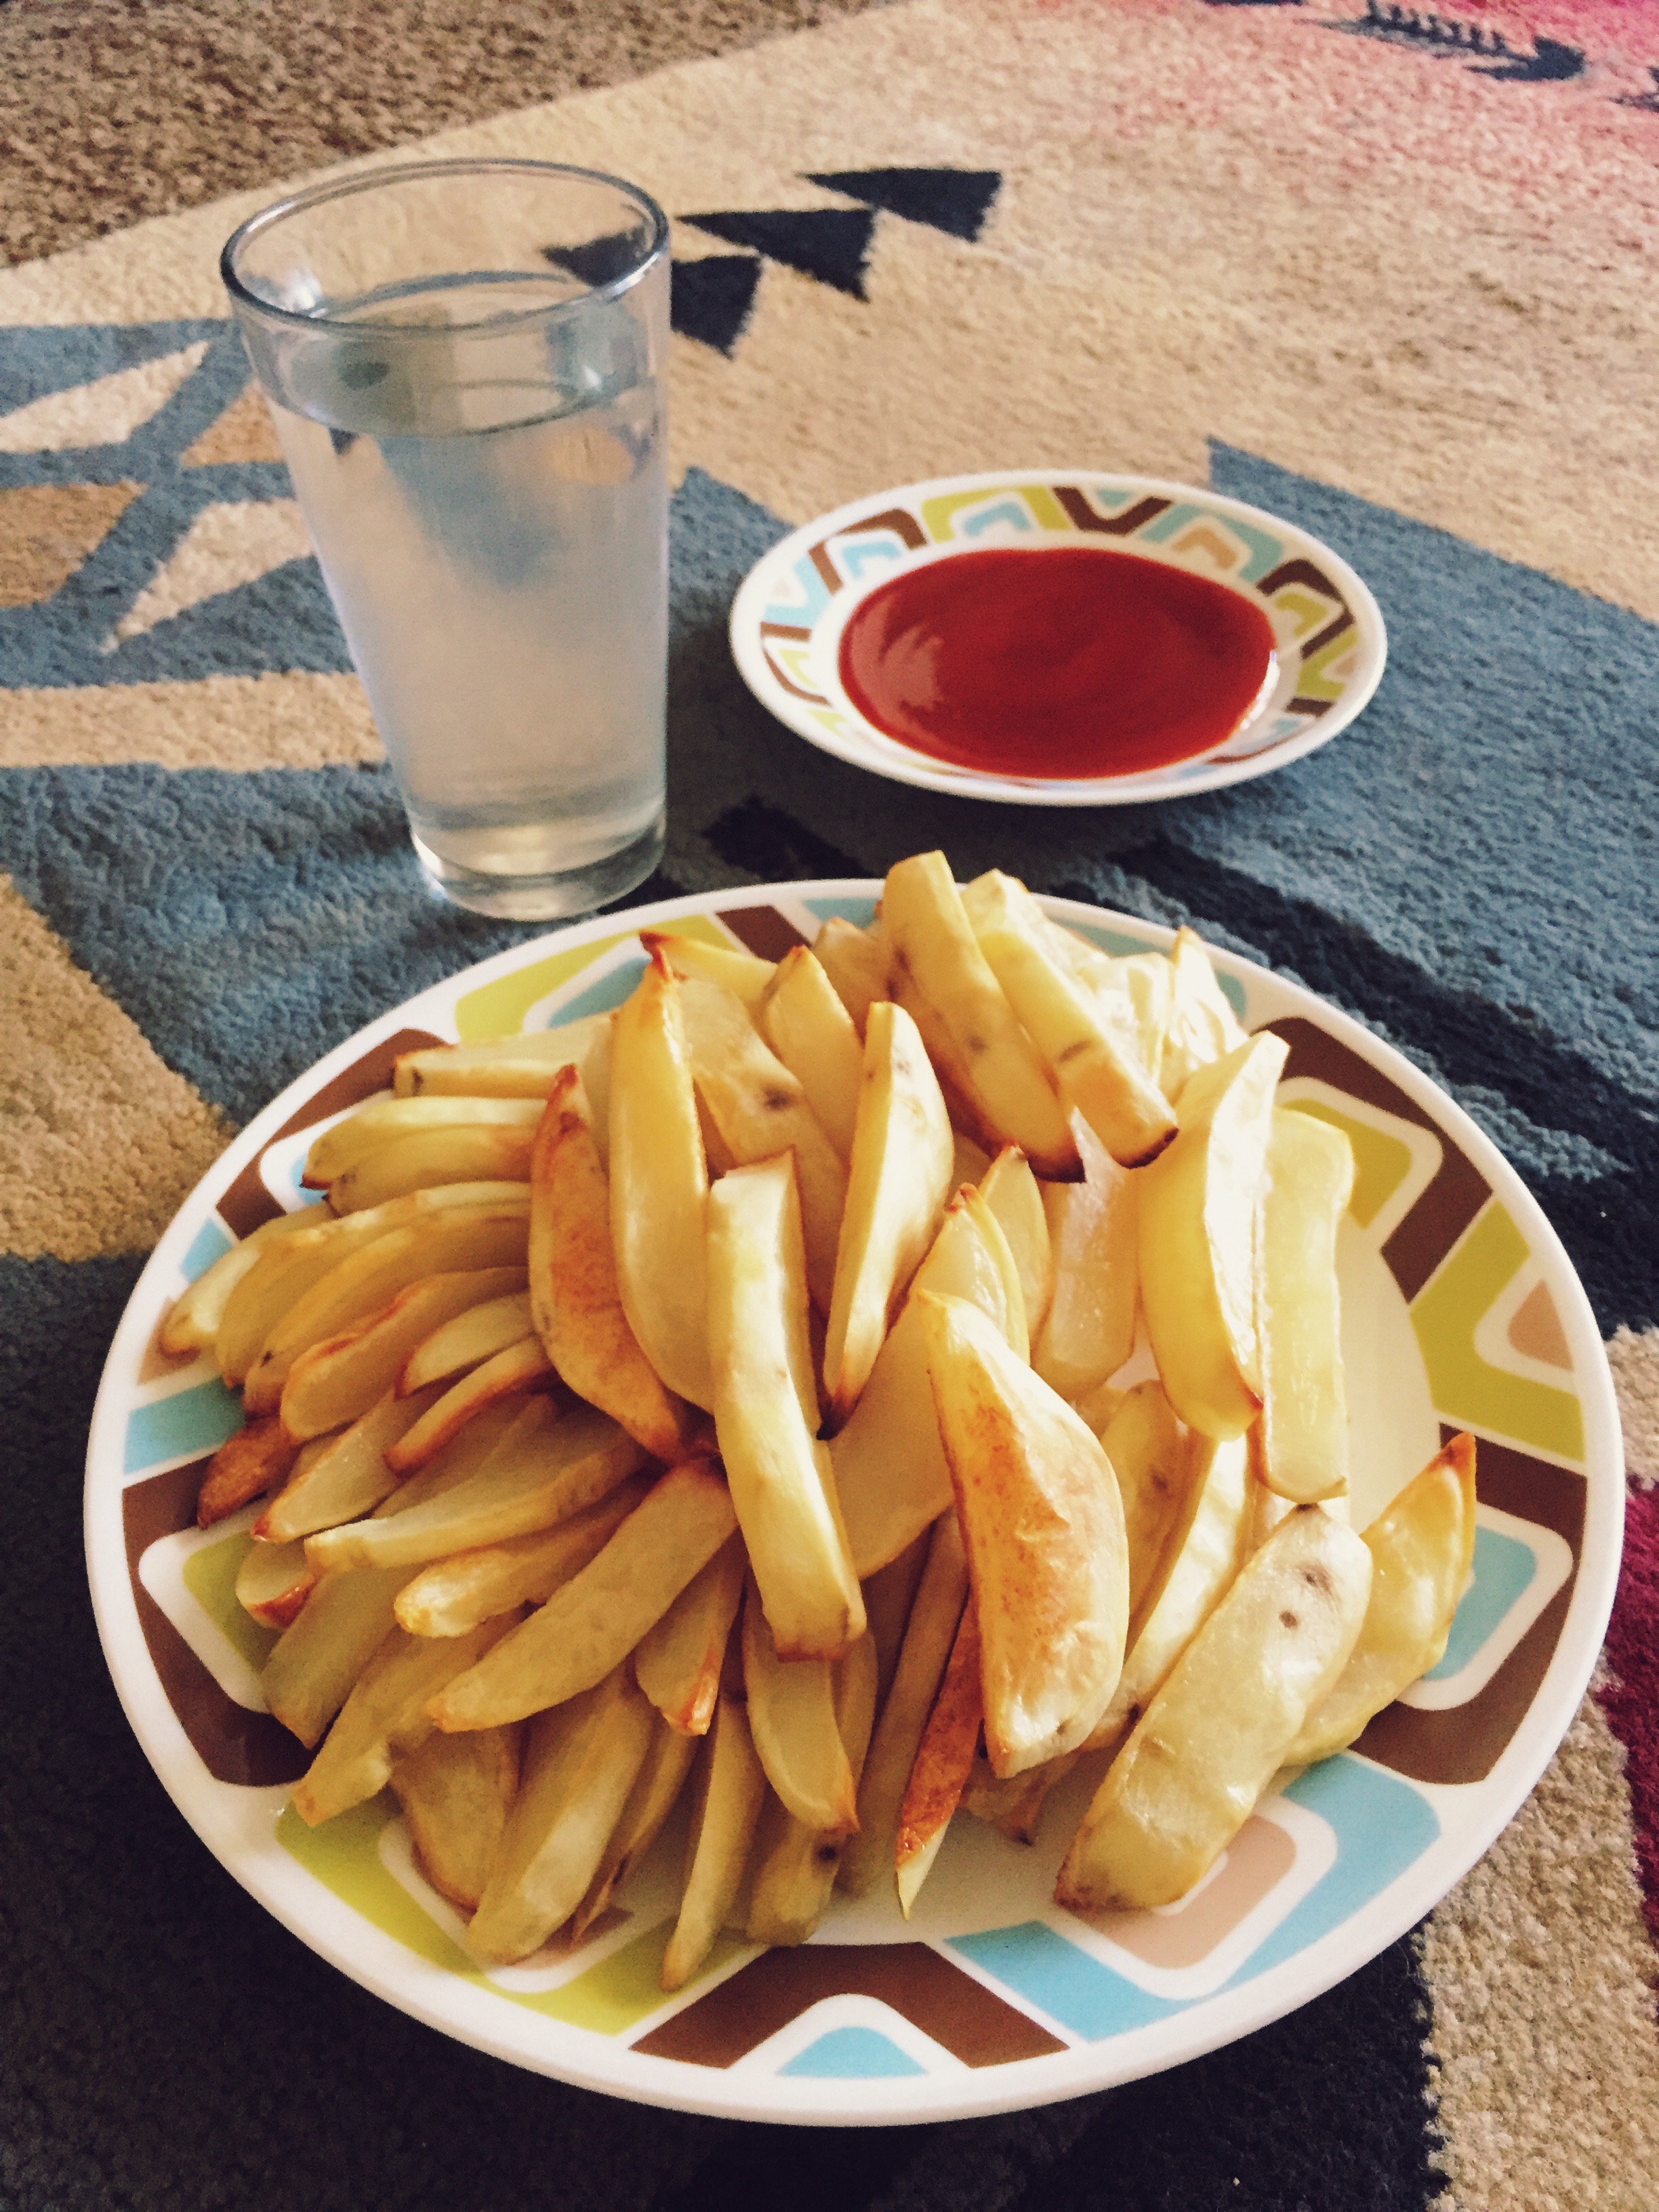 Chippies (potato wedges) are your best friend.